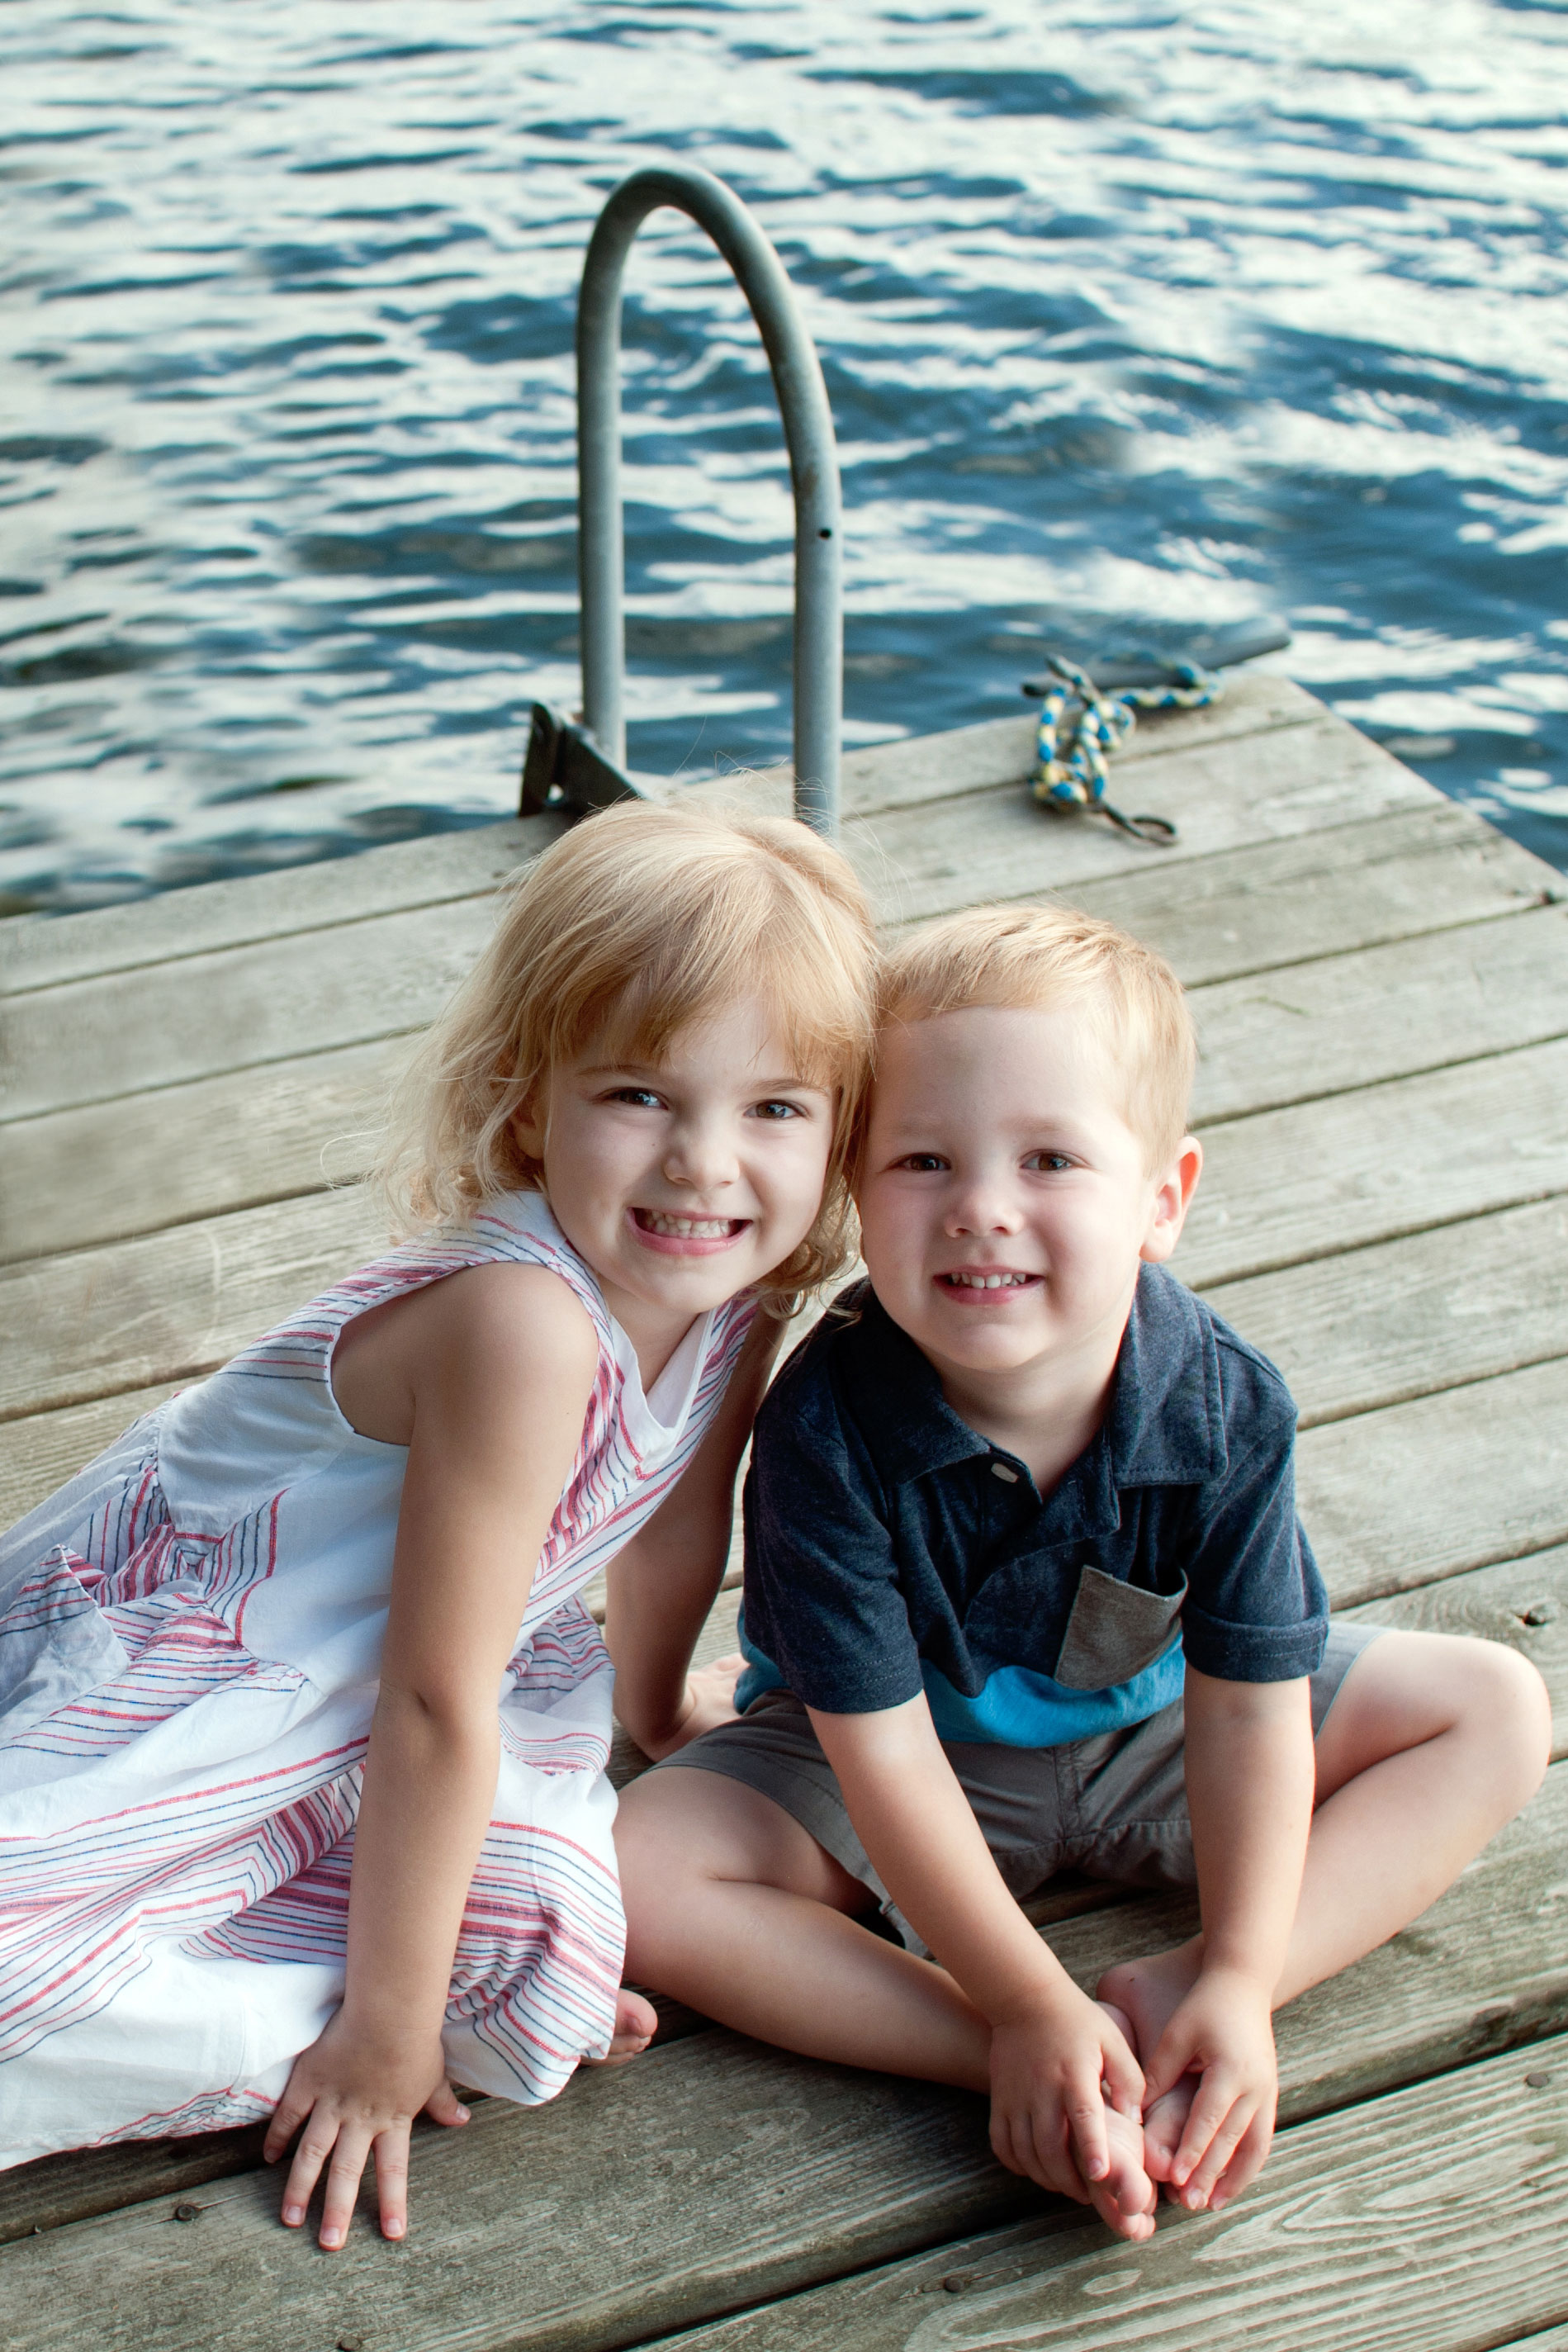 young girl and boy sitting together smiling on a dock